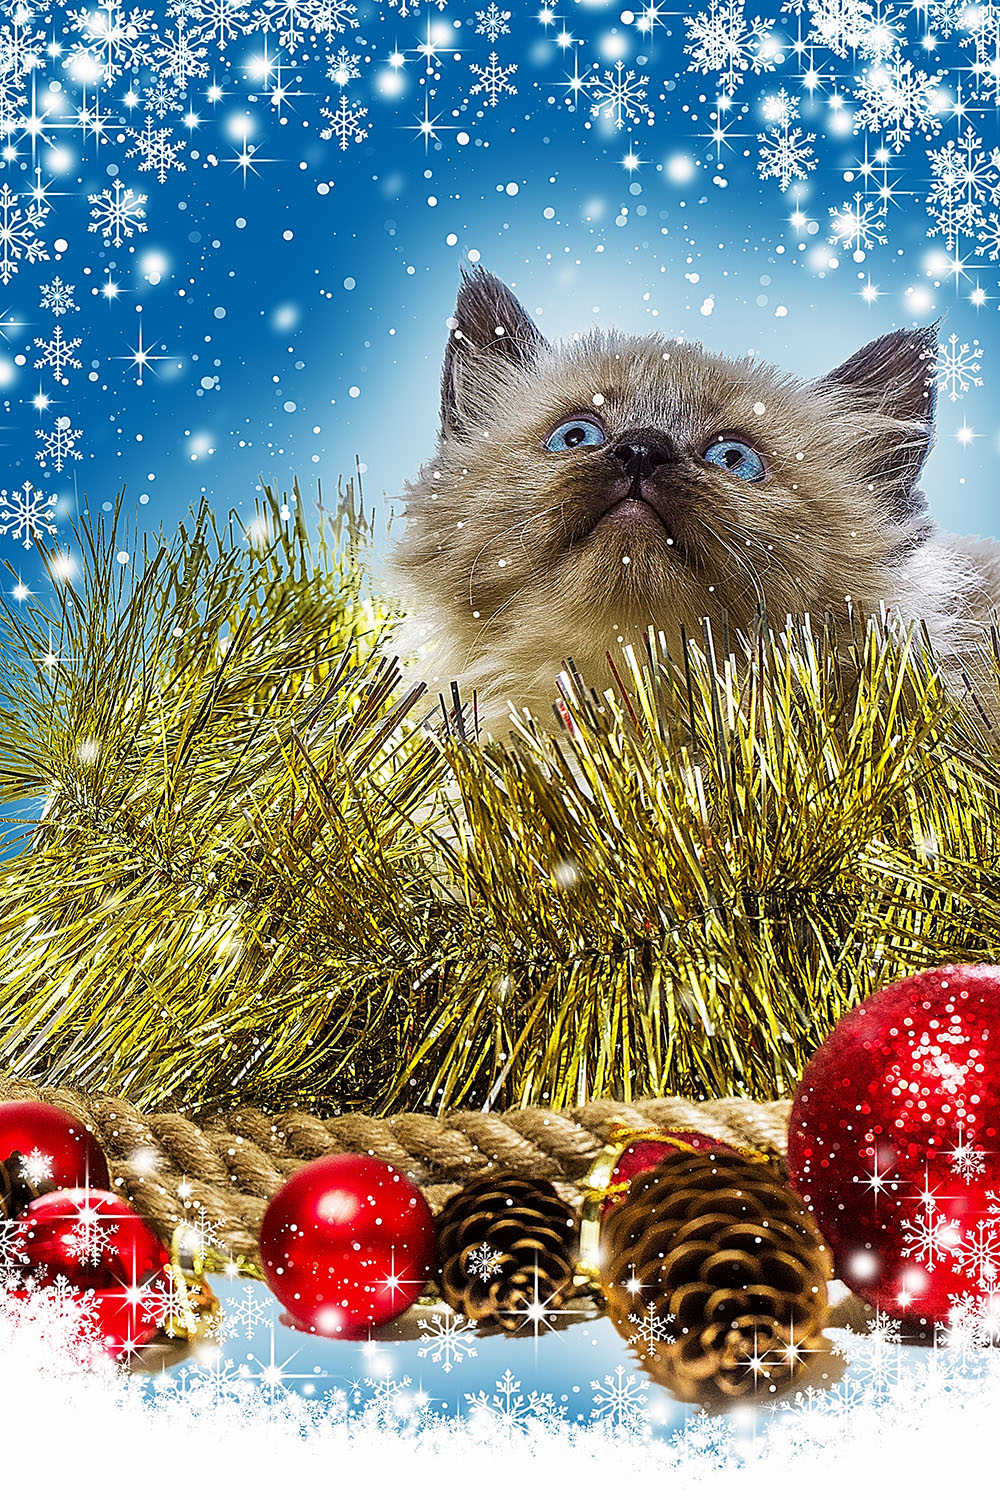 Christmas card. Cute red kitten in the snow. Kitten on Christmas background